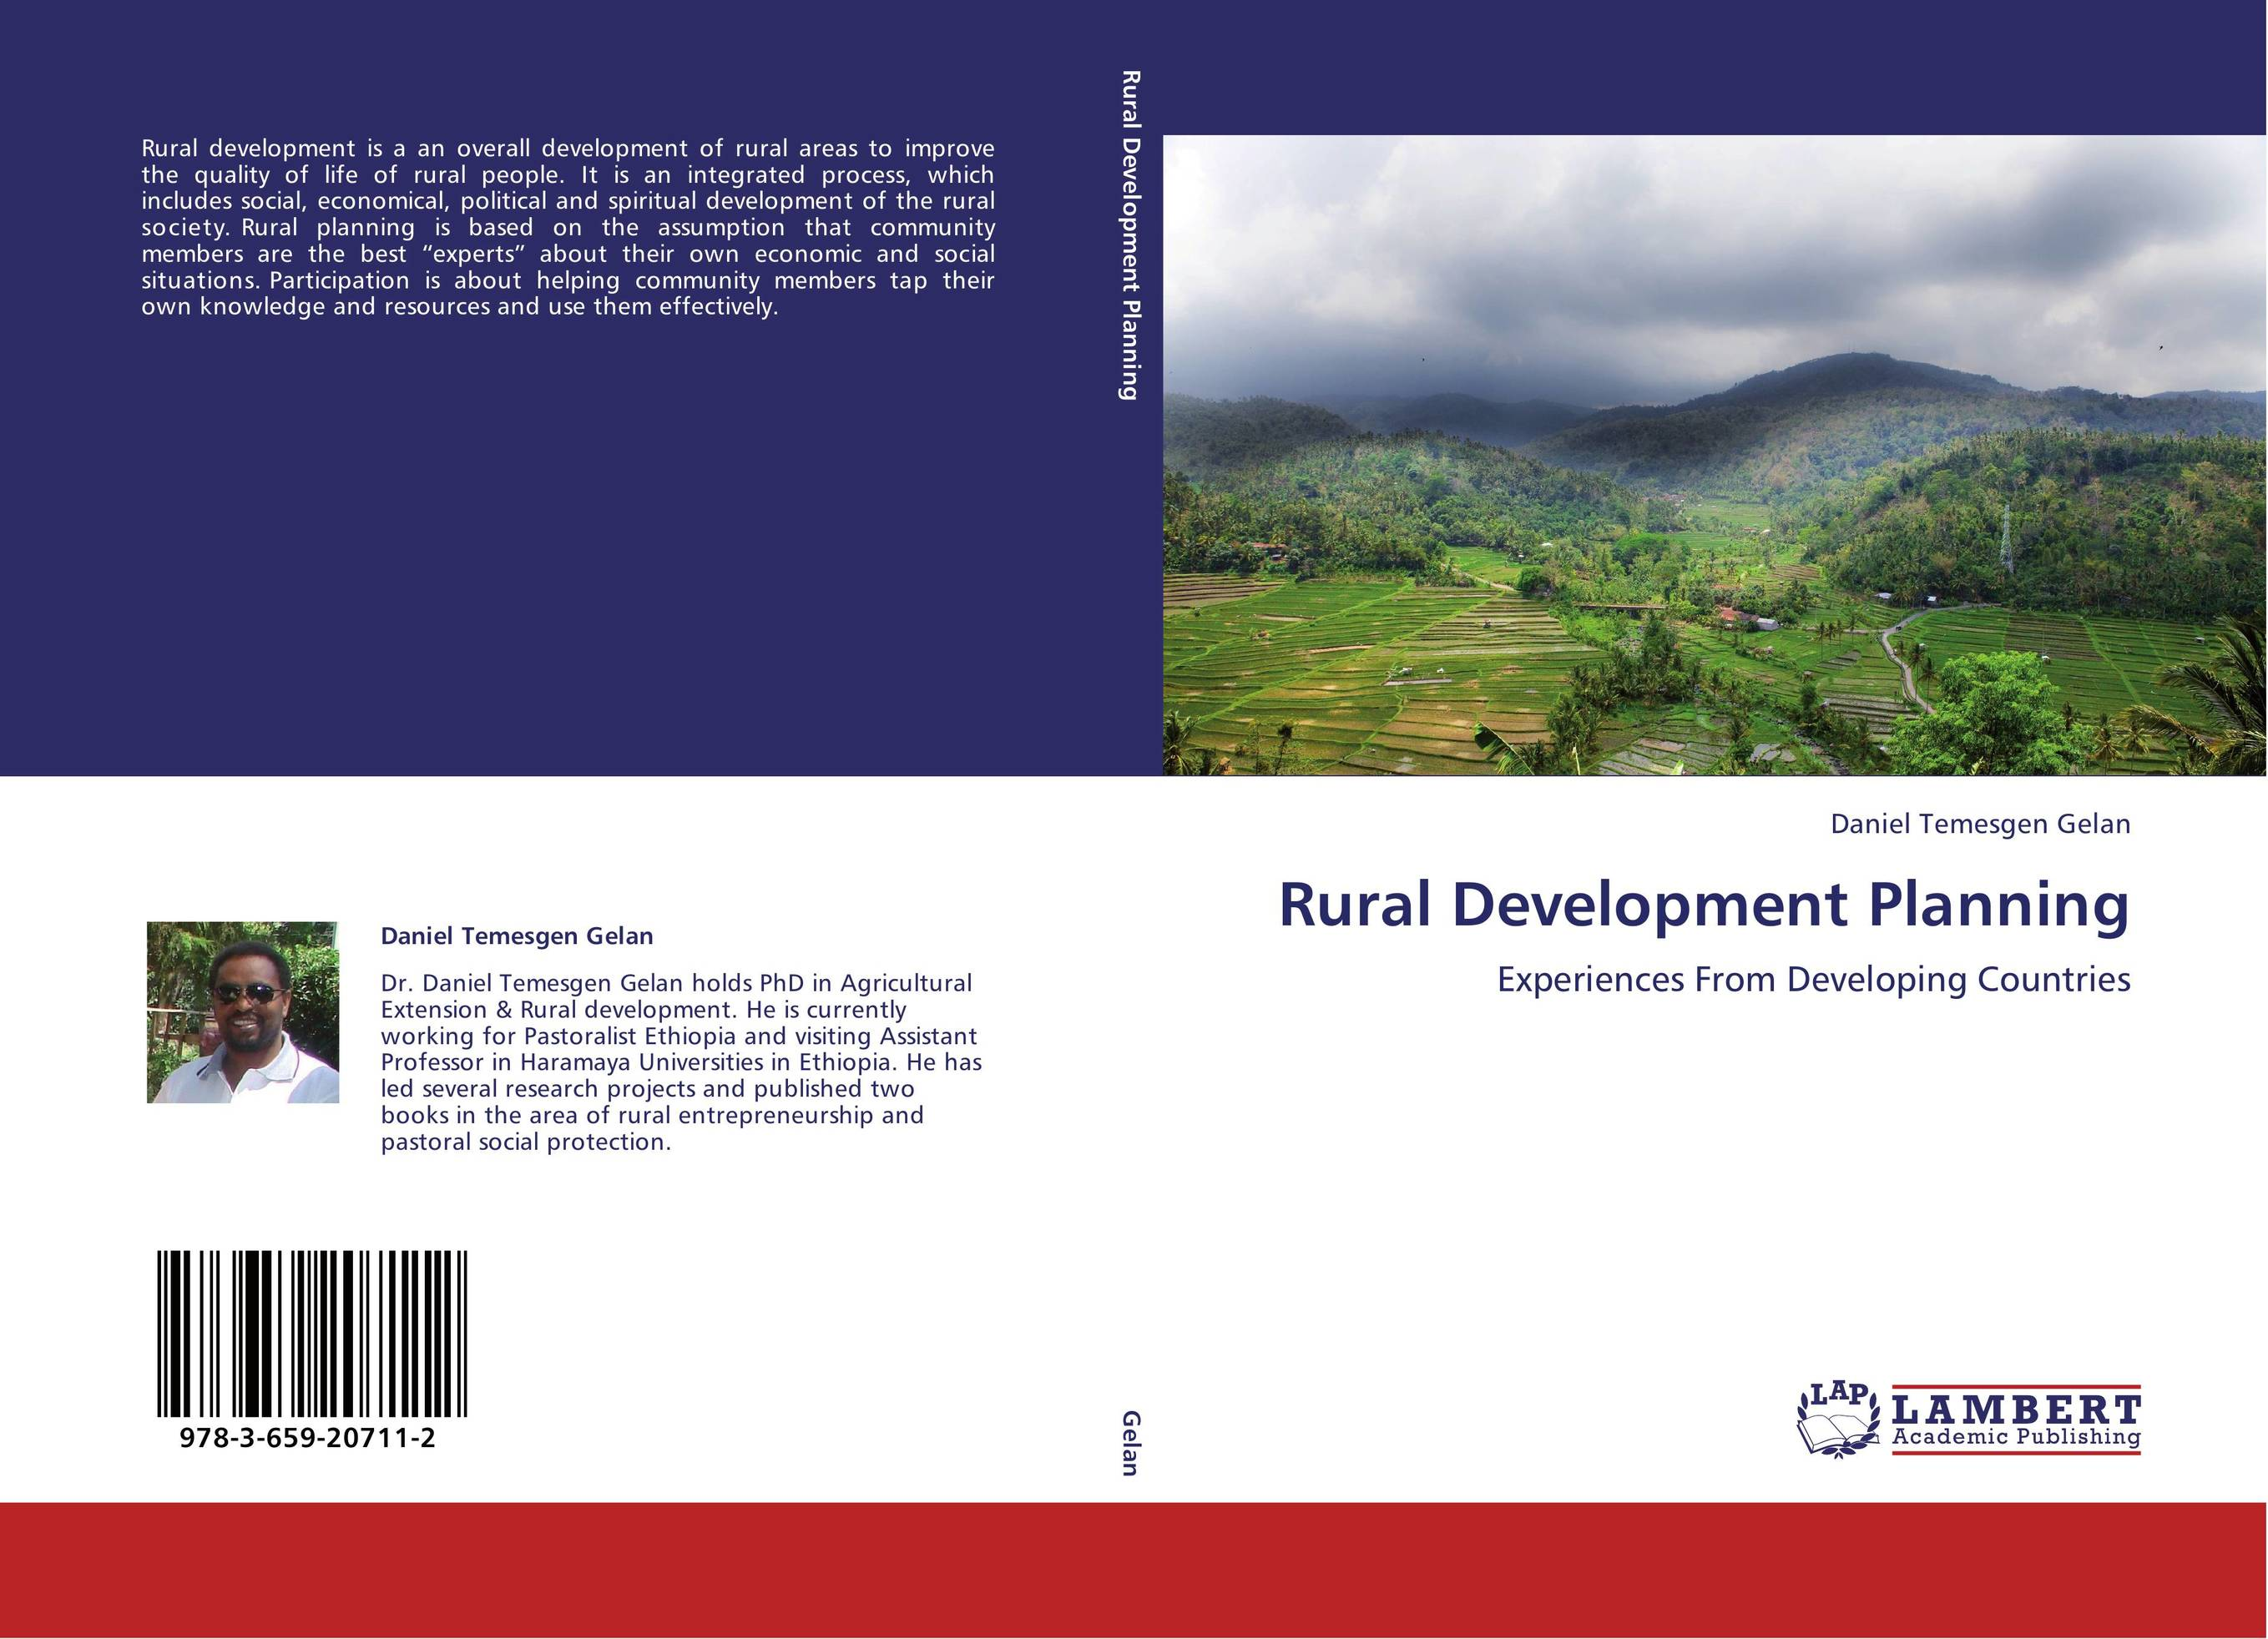 9783659207112 Rural Development Planning Daniel Temesgen Gelan